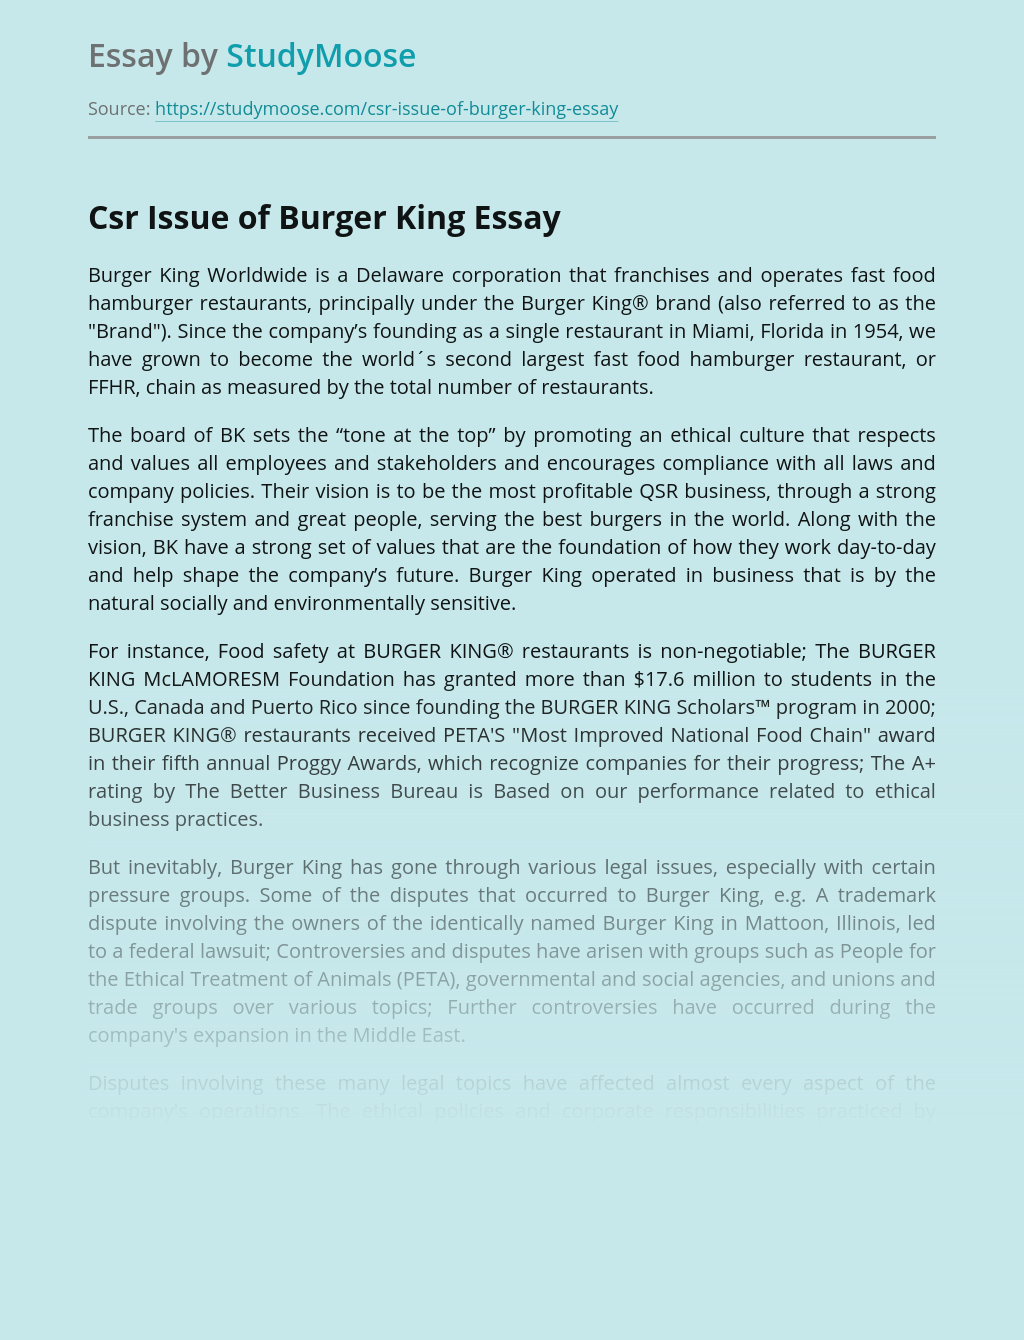 CSR Issue of Burger King Fast Food Restaurants